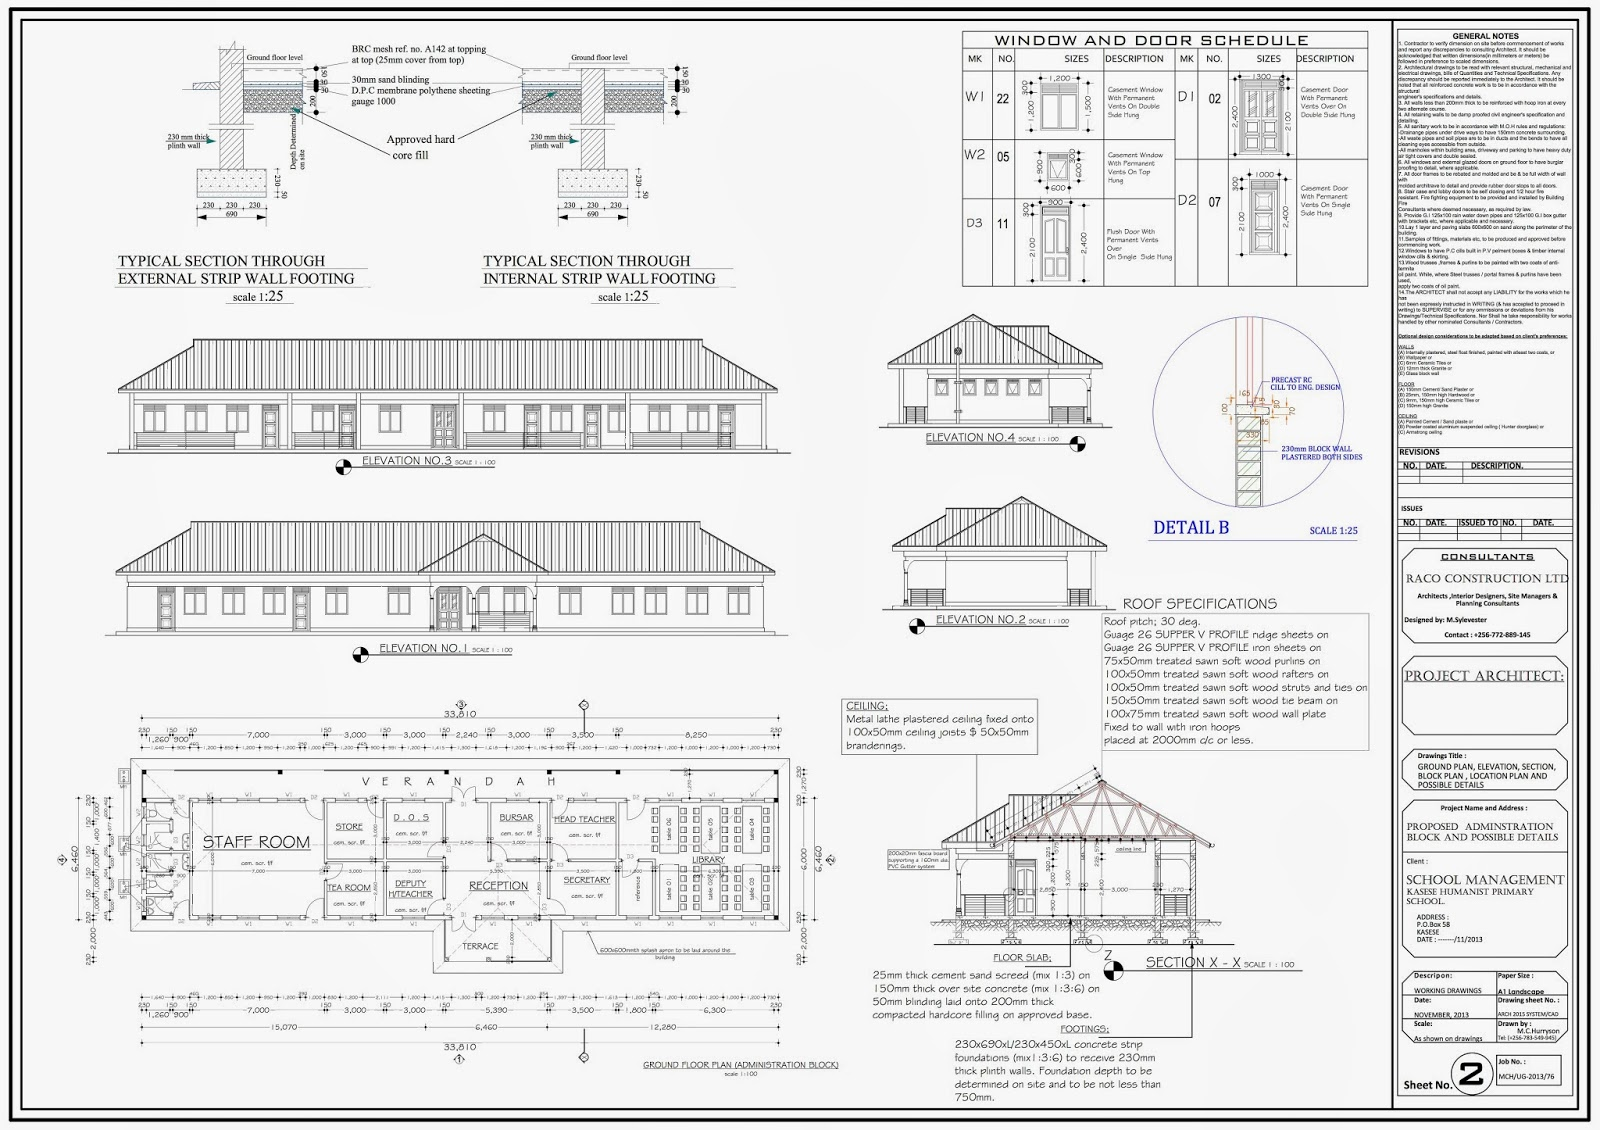 Administration block plan for new kasese humanist primary school